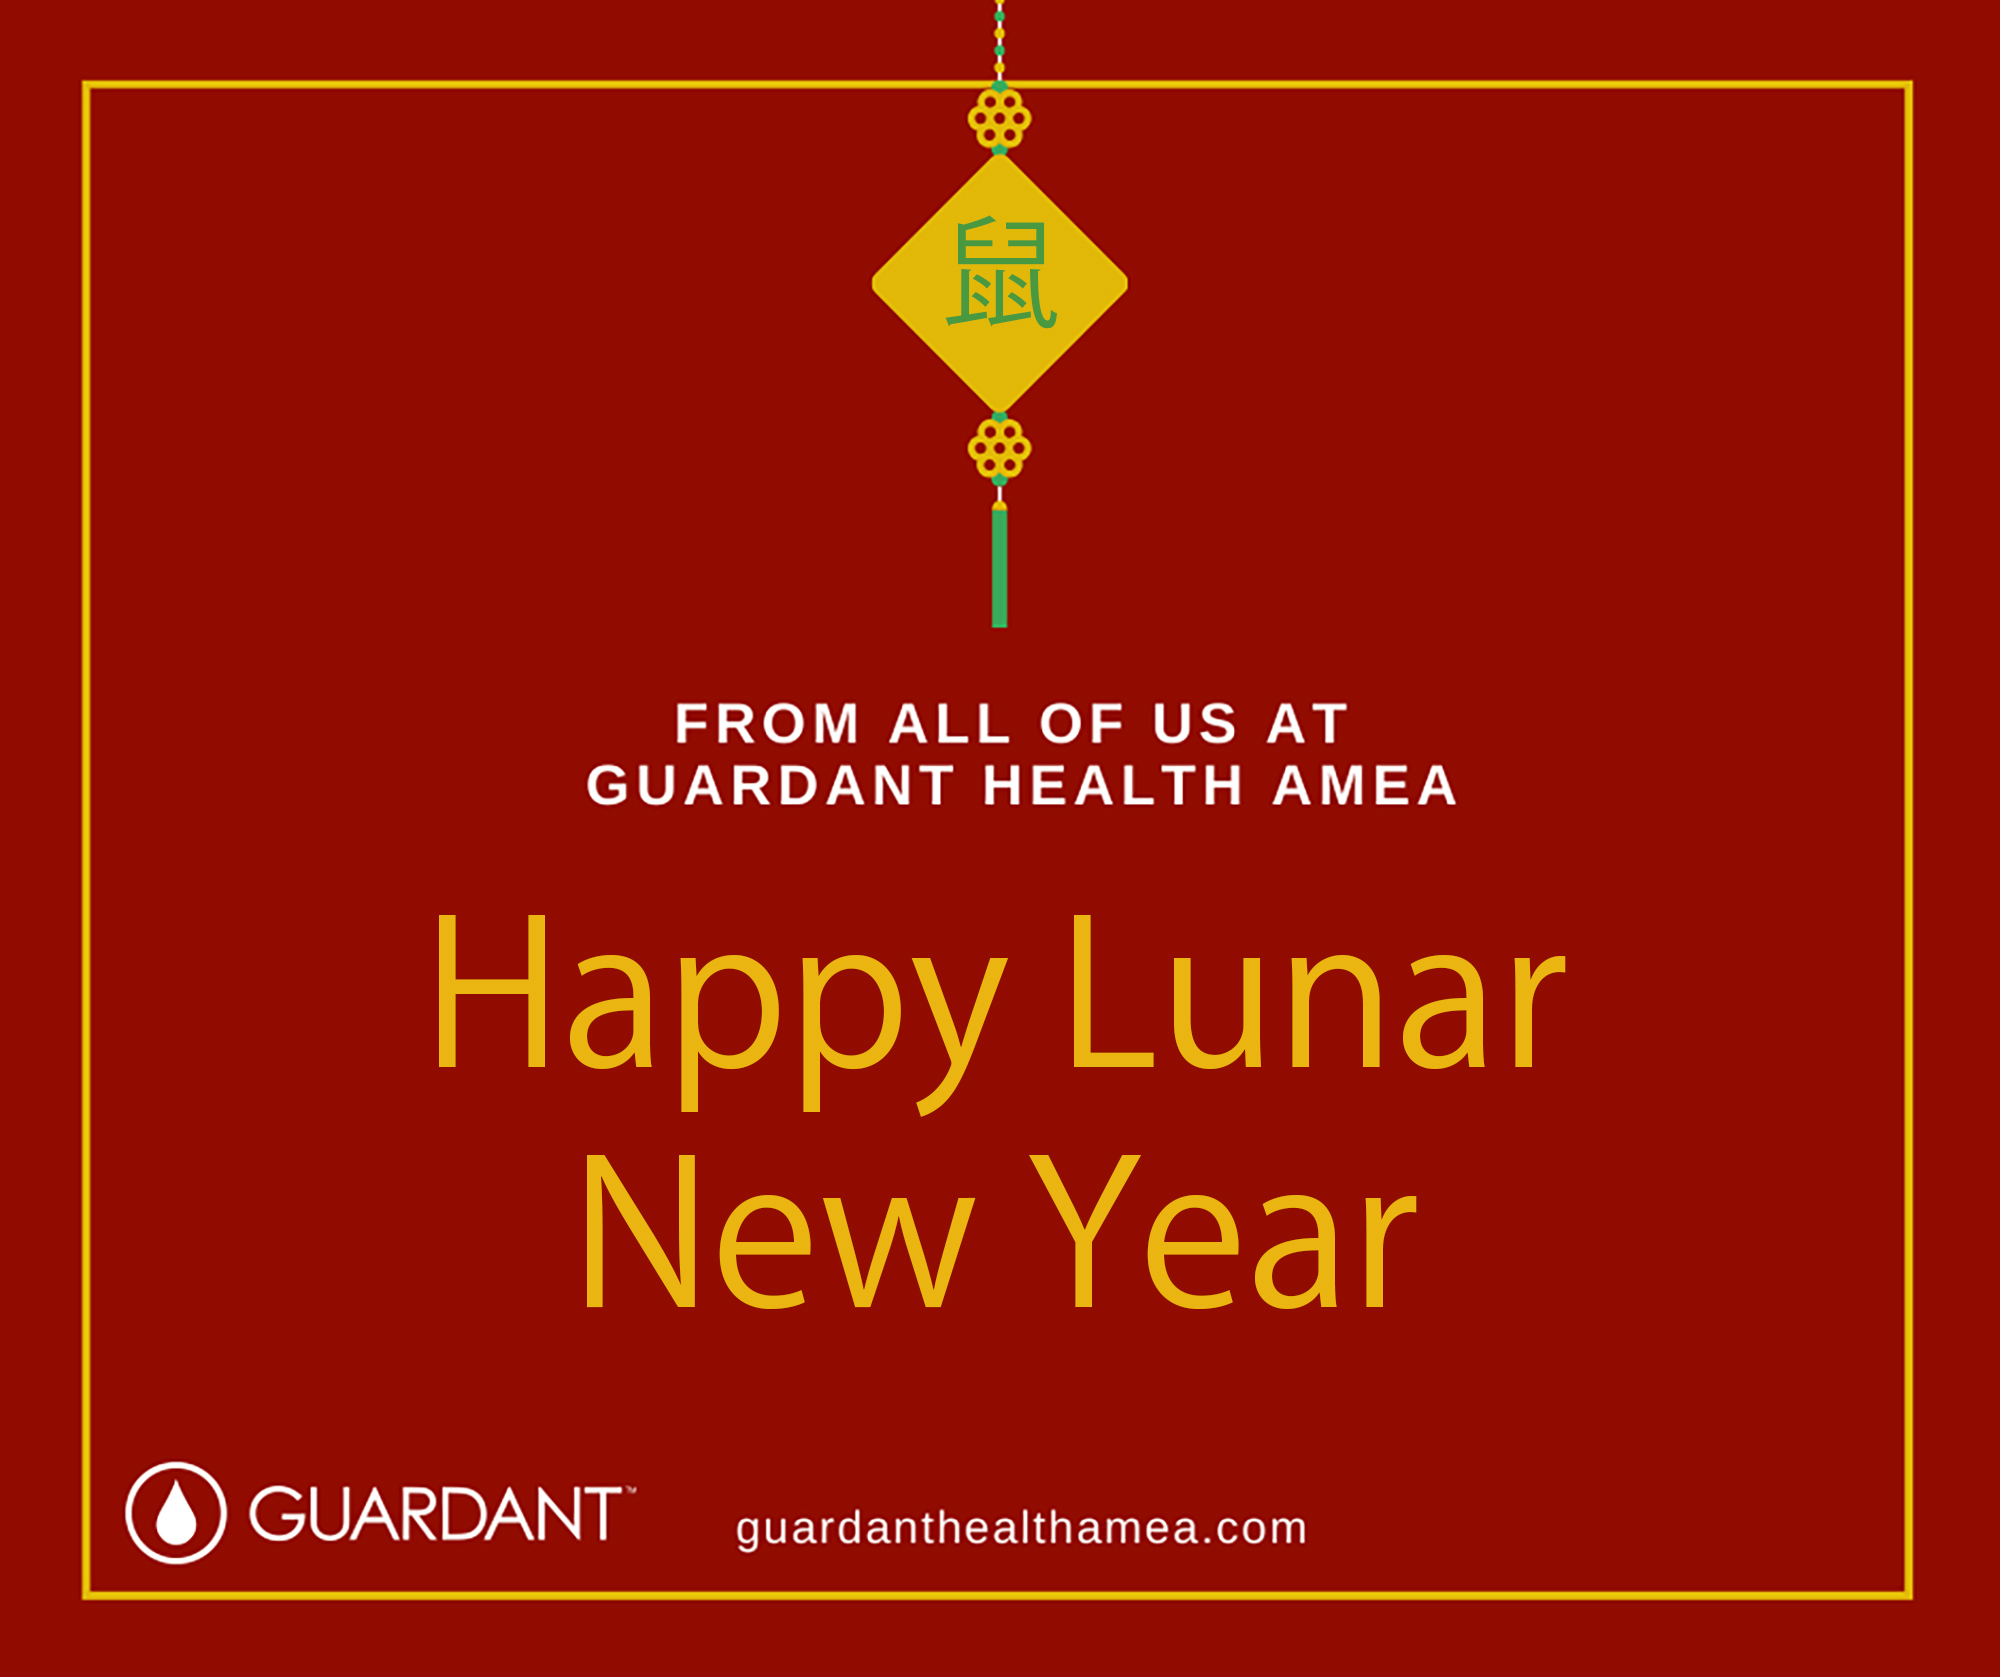 Happy Lunar New Year from all of us at guardanthealthamea.com